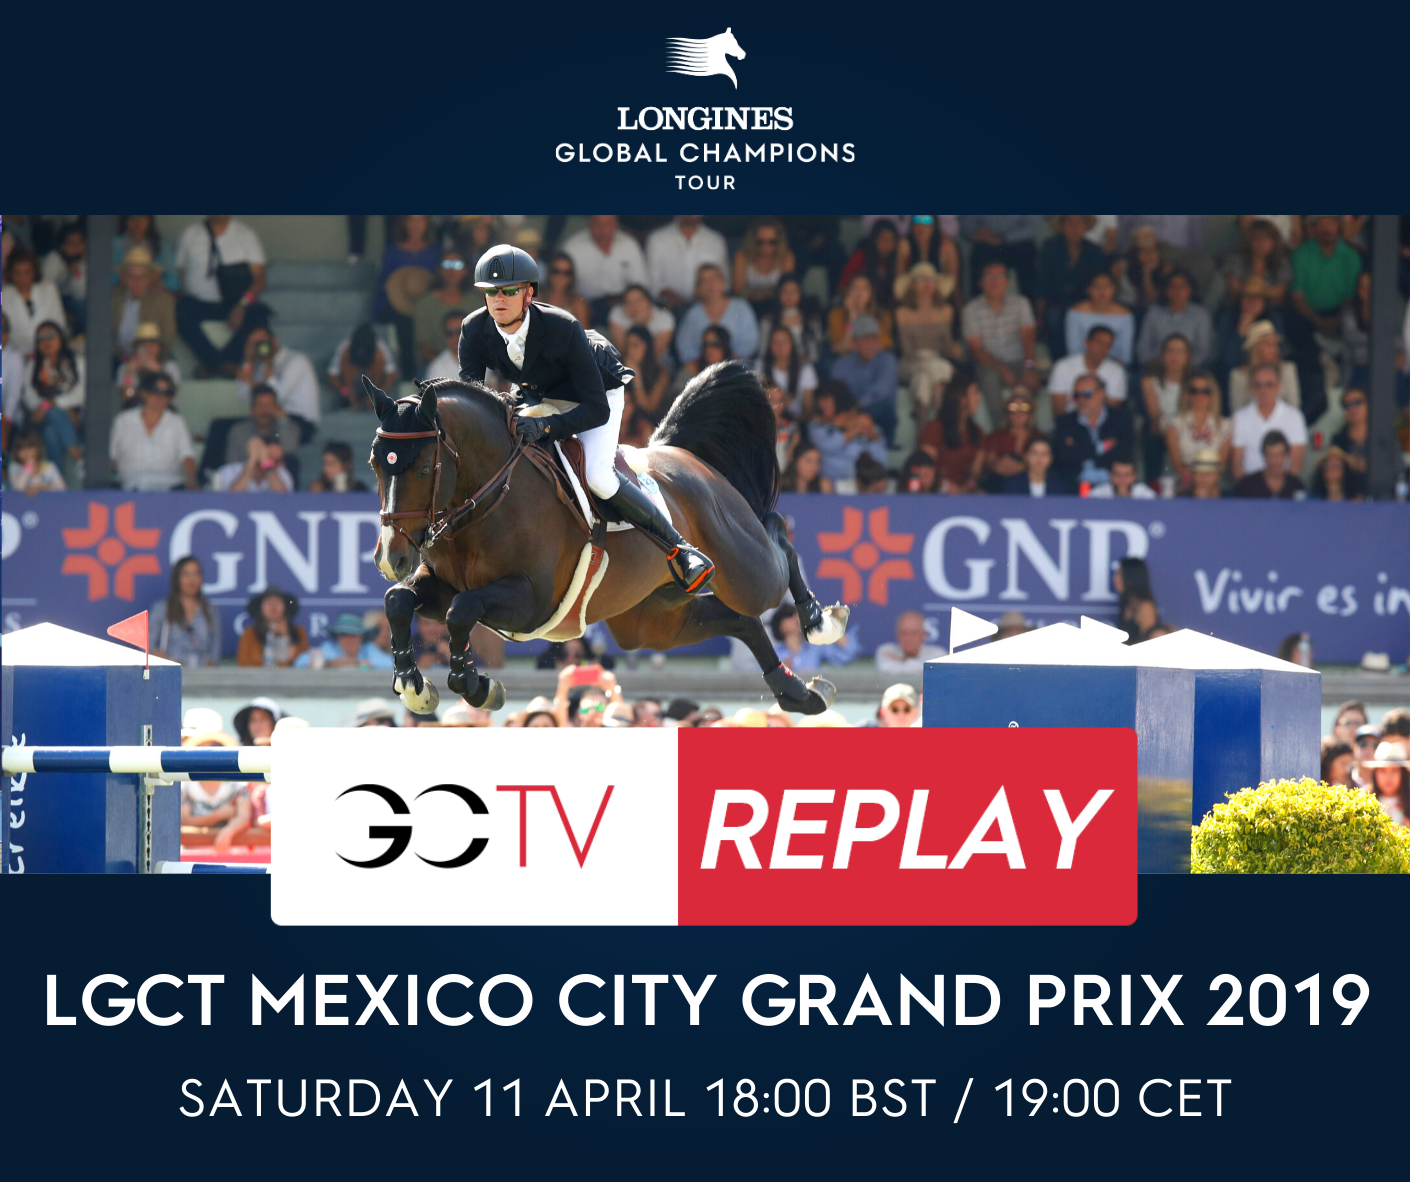 Tip: rewatch the Longines Global Champions Tour Mexico City Grand Prix 2019